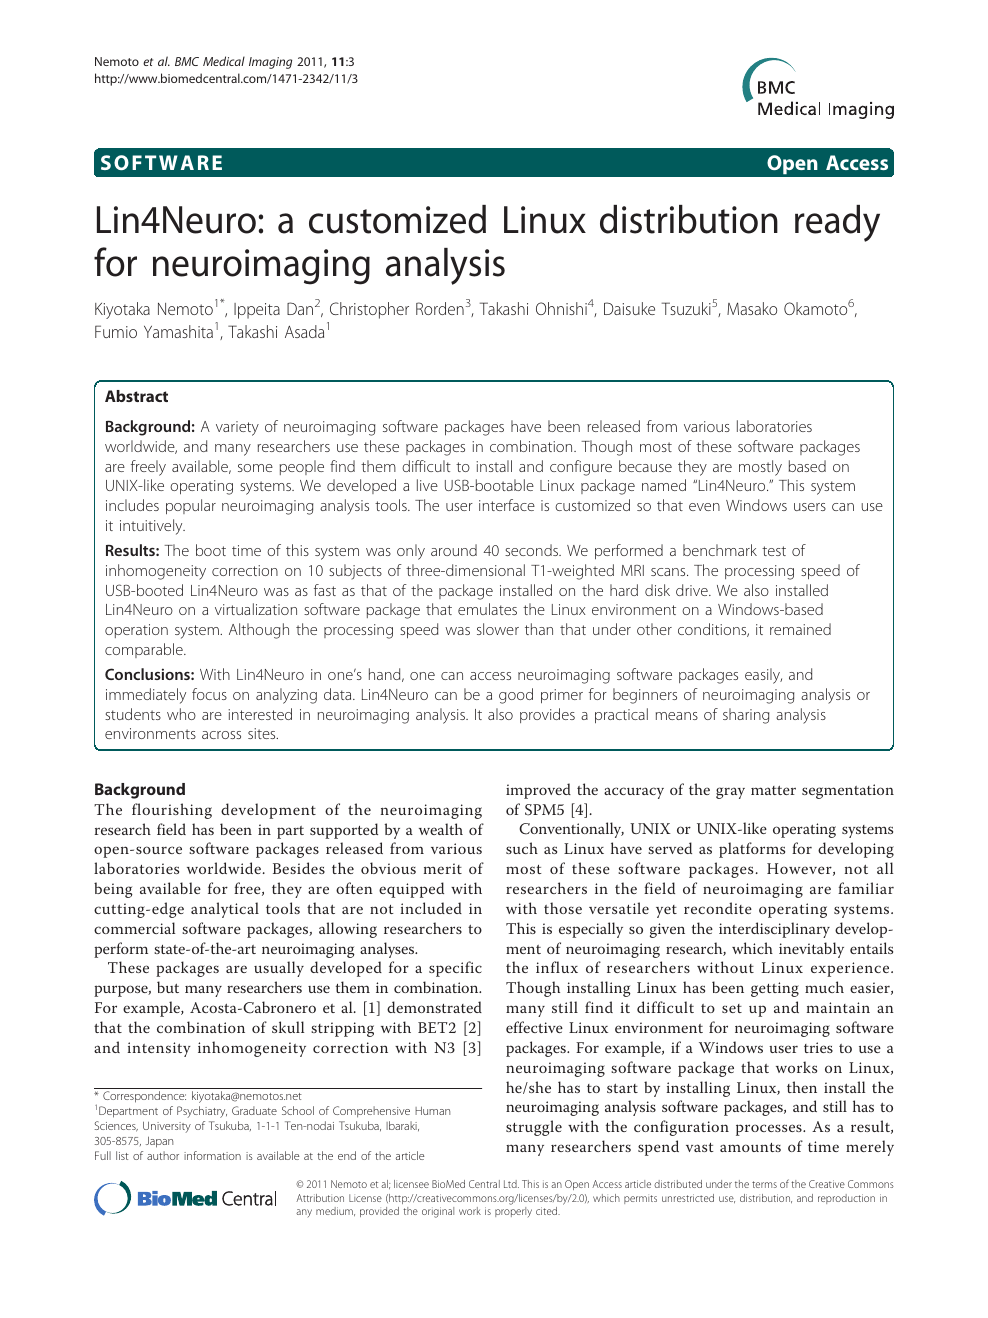 Lin4Neuro: a customized Linux distribution ready for